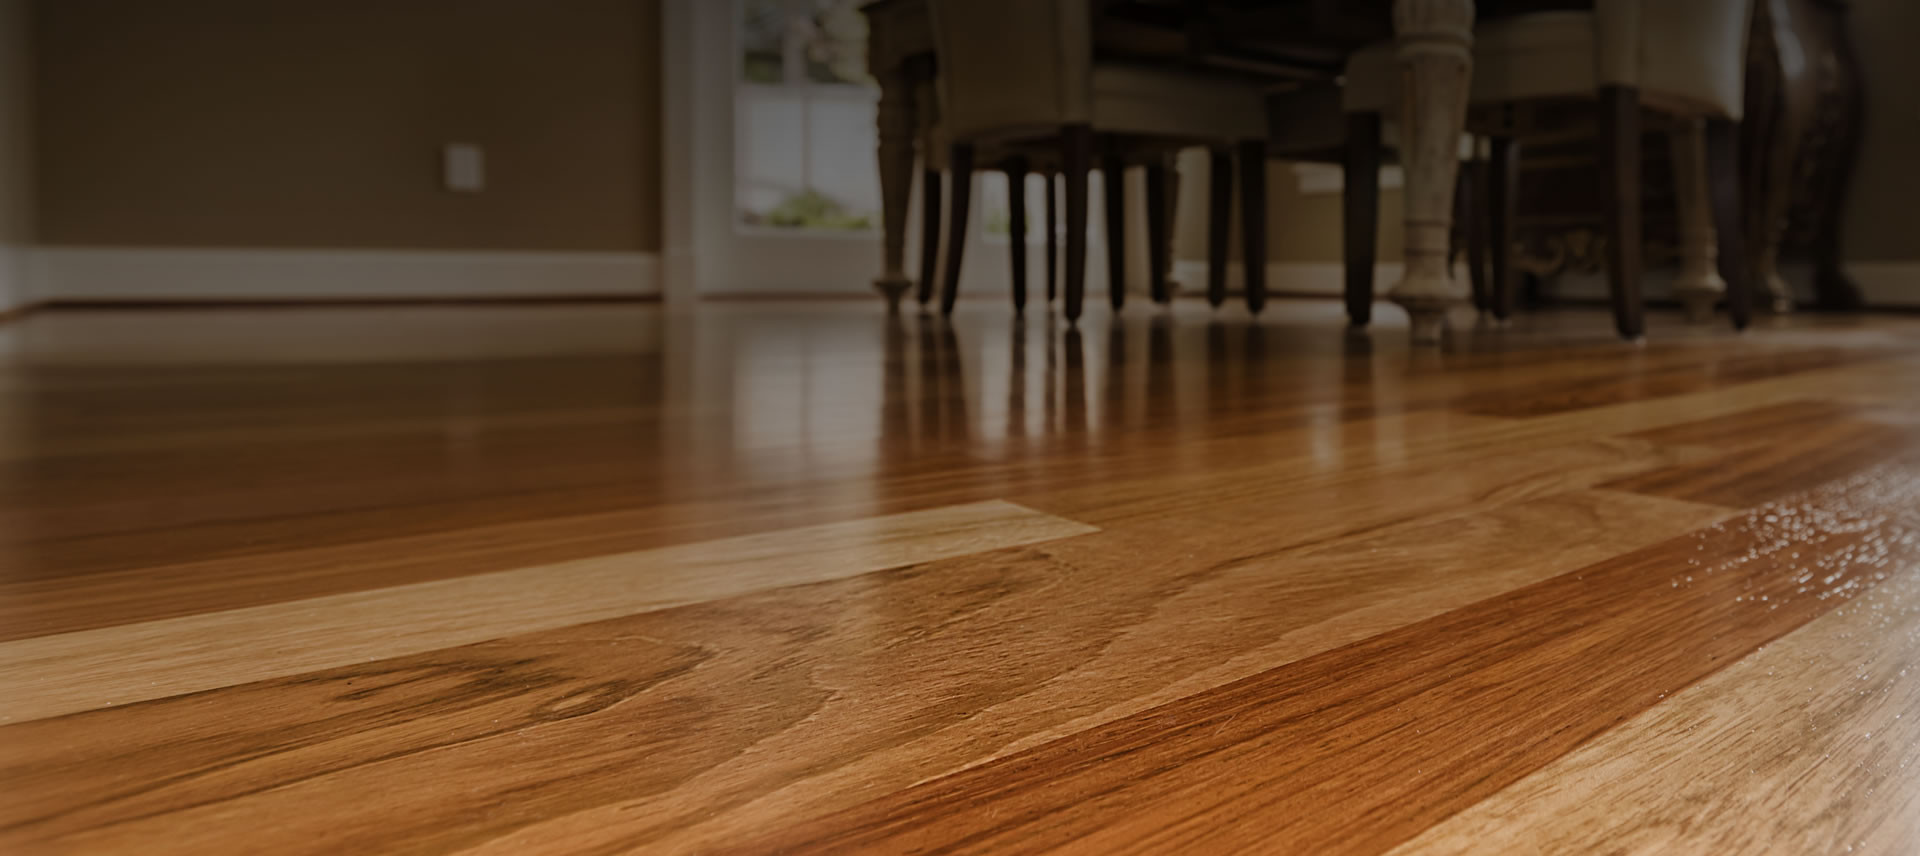 11 Wonderful Hardwood Floor Refinishing Olathe Ks Unique